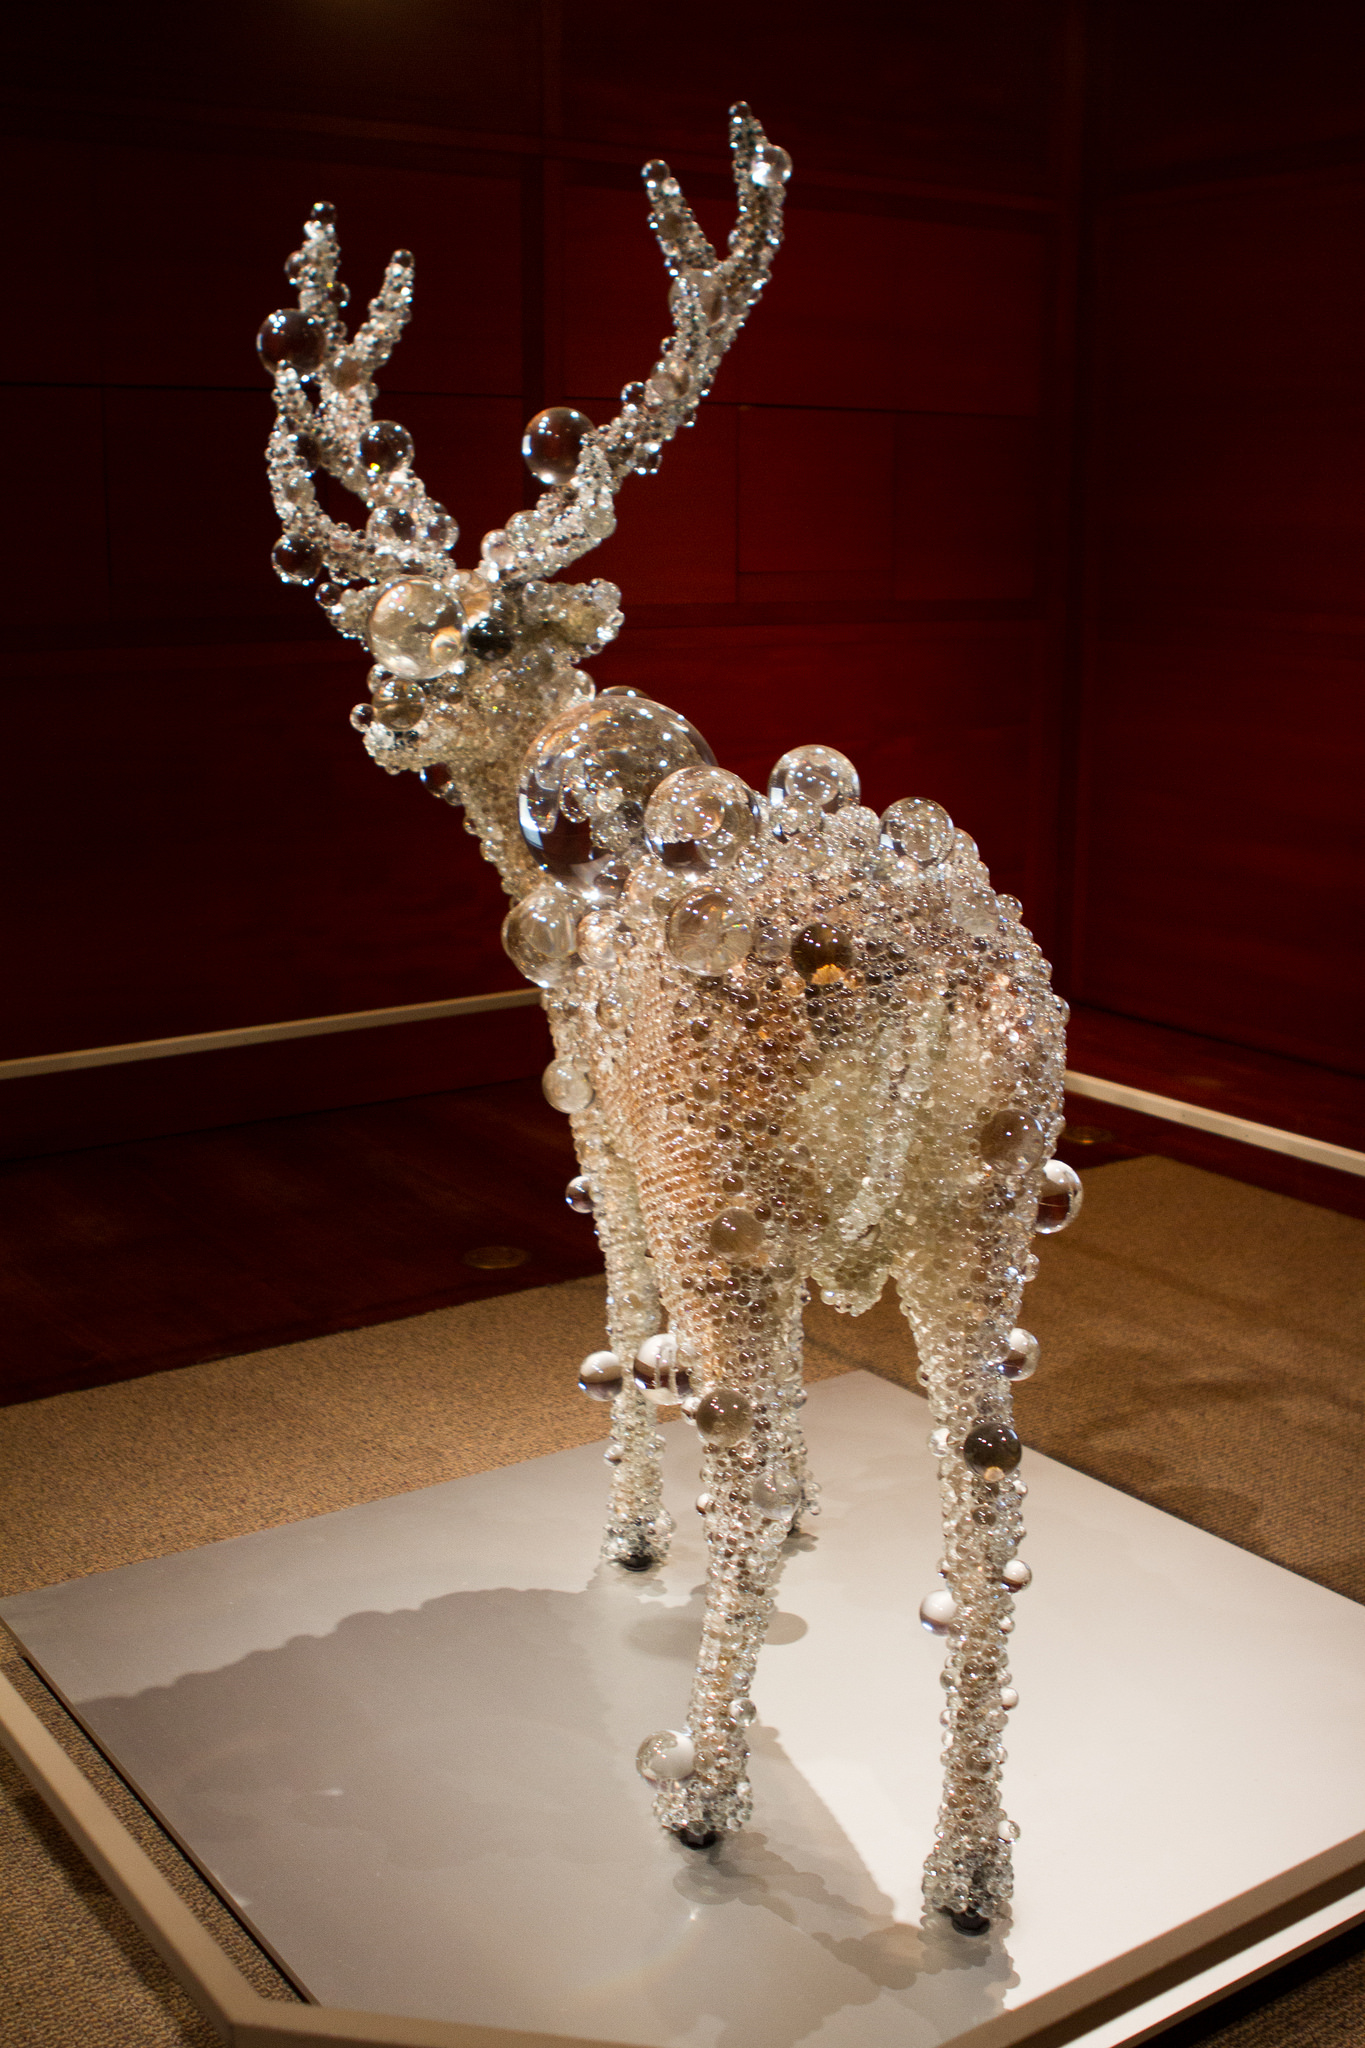 Taxidermied Deer in Glass, The Met